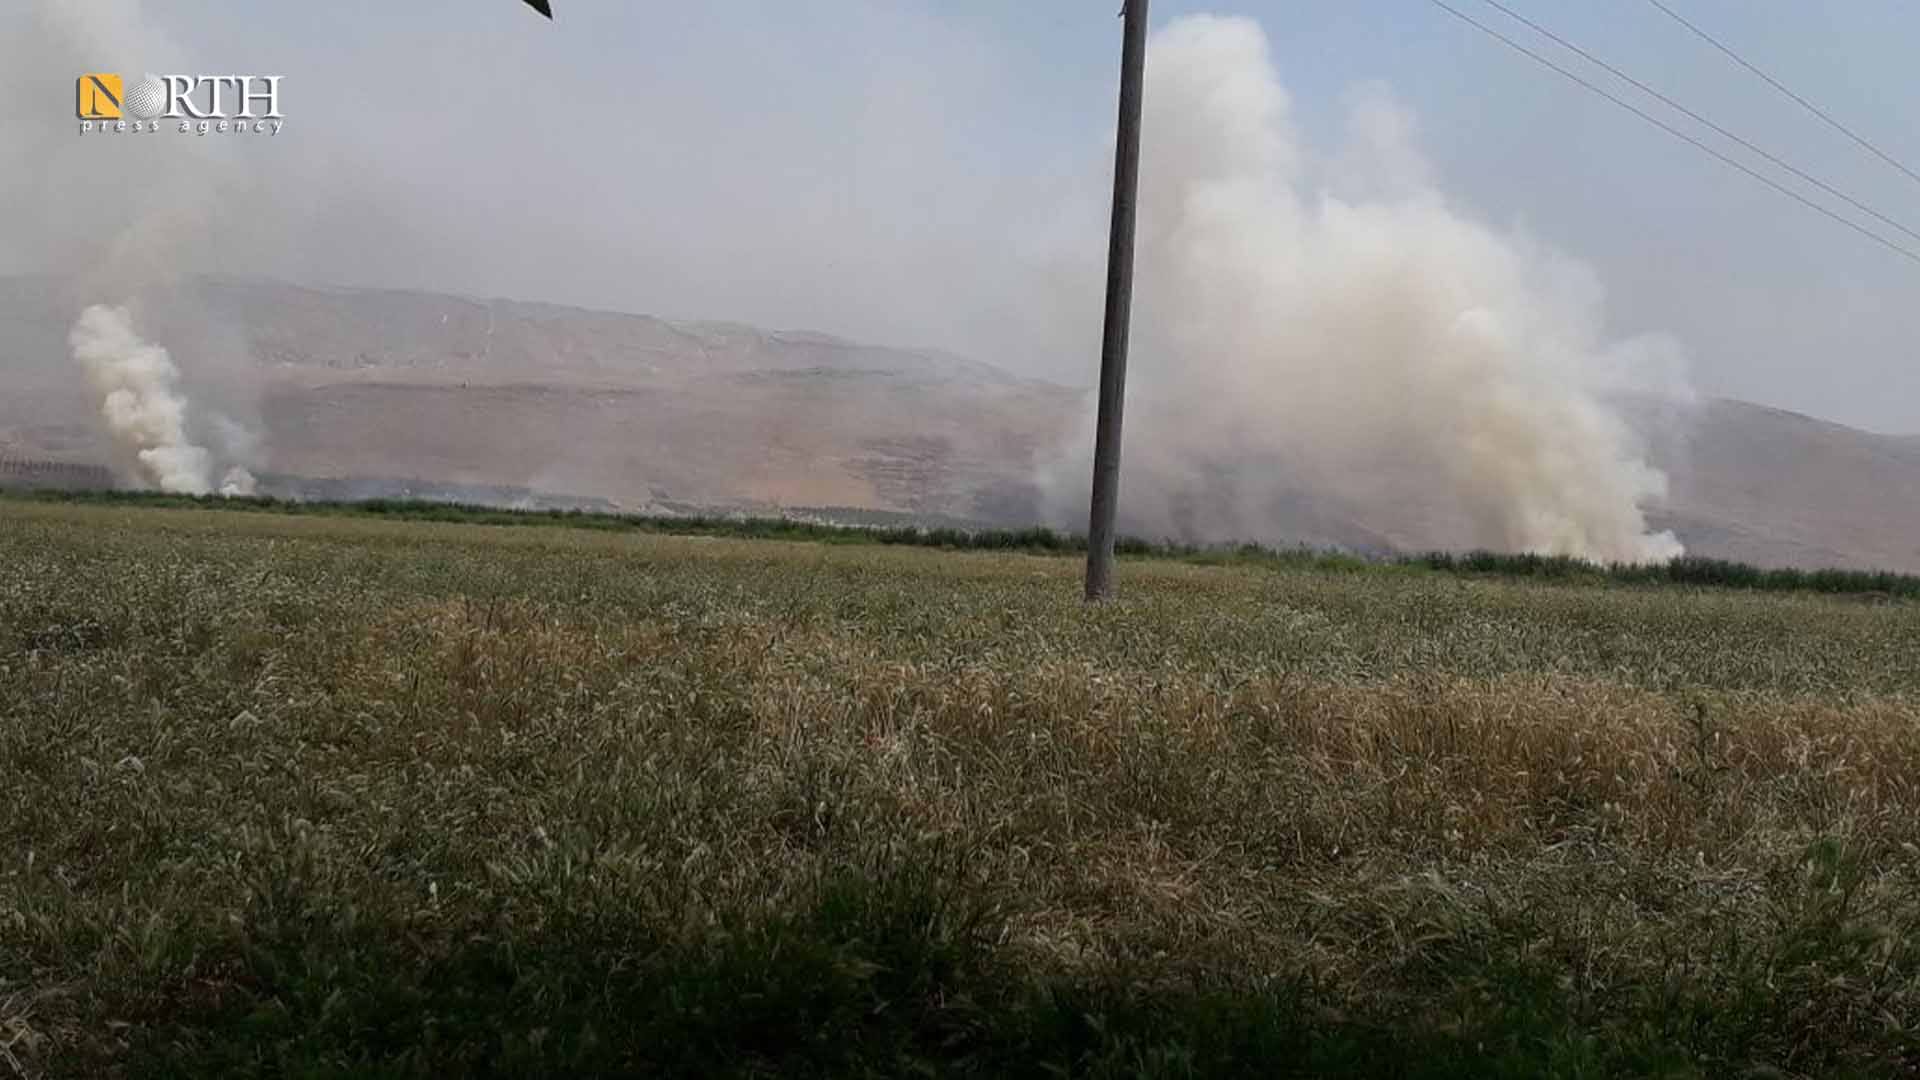 Fires in agricultural lands in Ghab Plain as a result of bombing – North Press